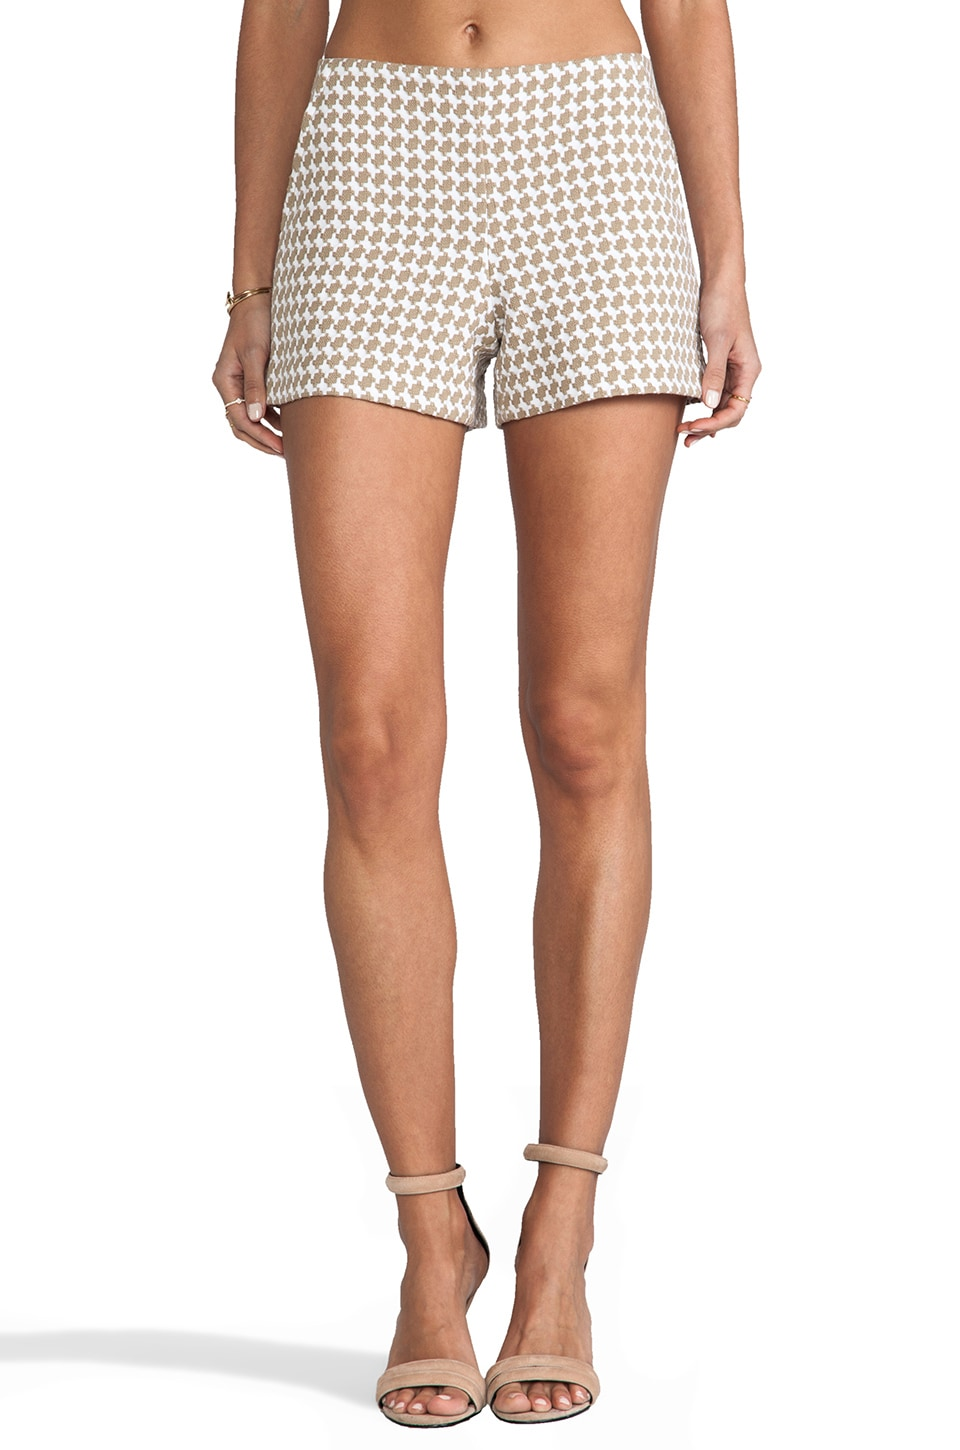 Trina Turk Multi Houndstooth Link Short in Khaki